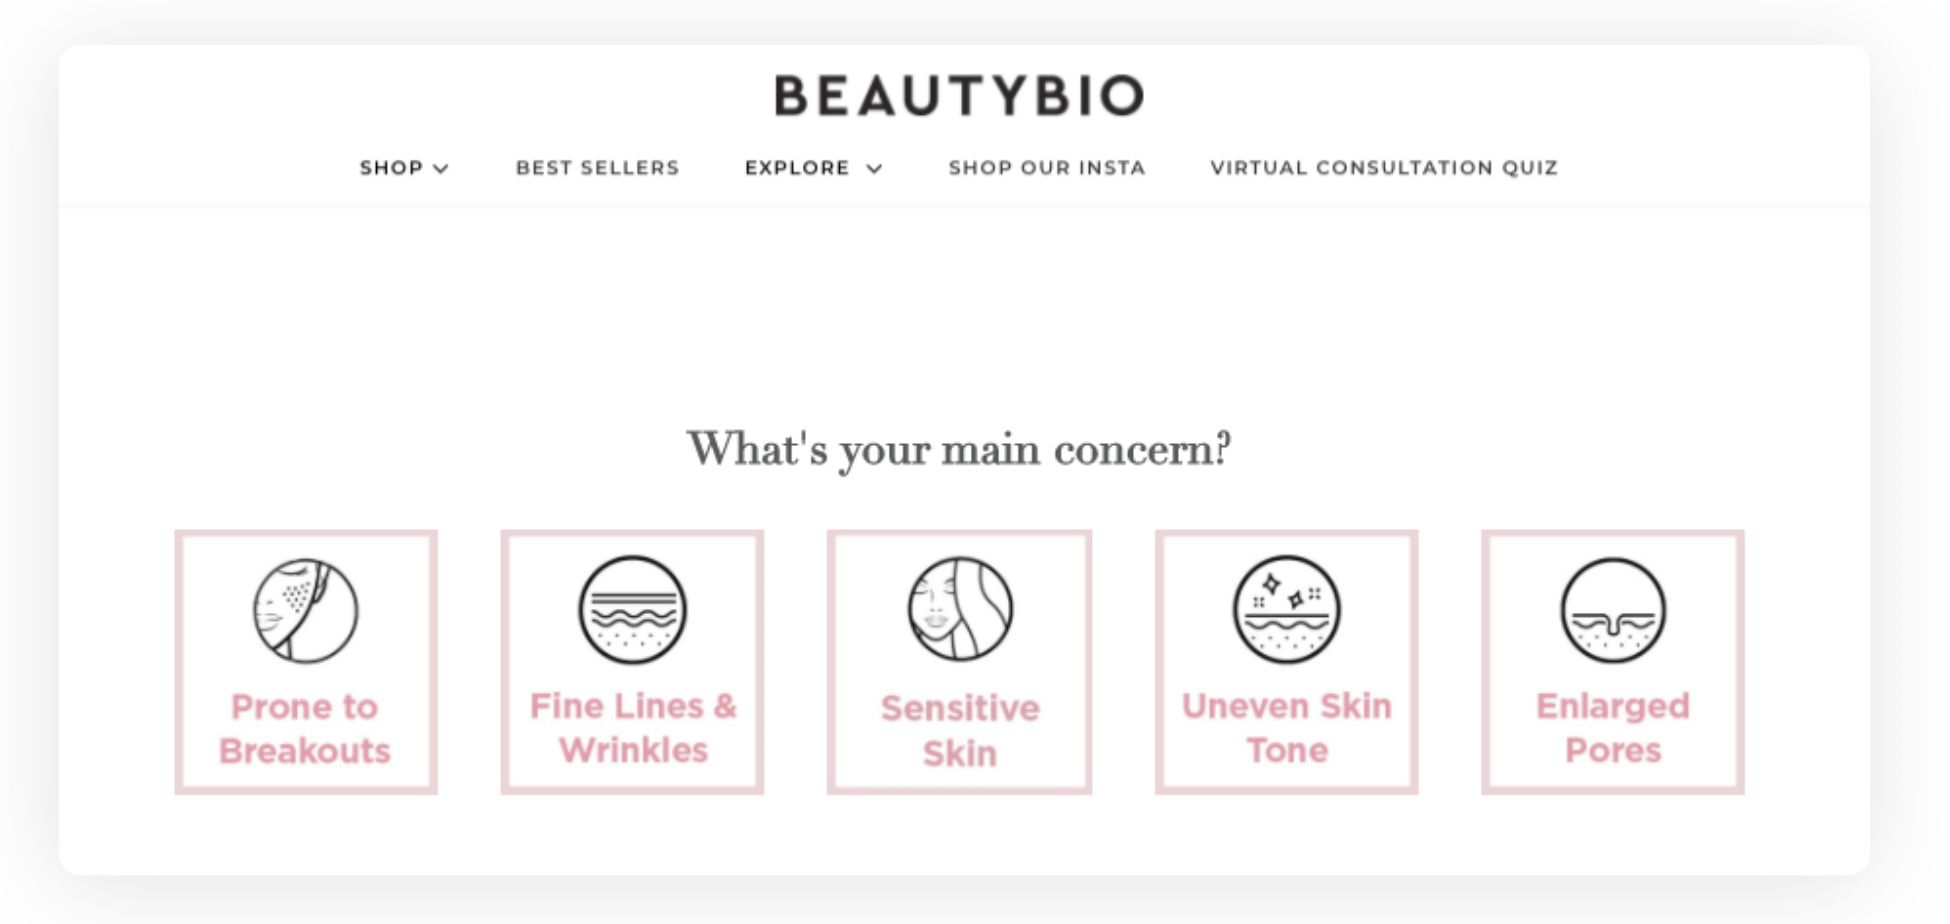 BeautyBio's virtual consultation asks customers what their skin is like, what age they are, what their skin concerns are, if they prefer a morning or night routine, and how quick they want their routine to be.